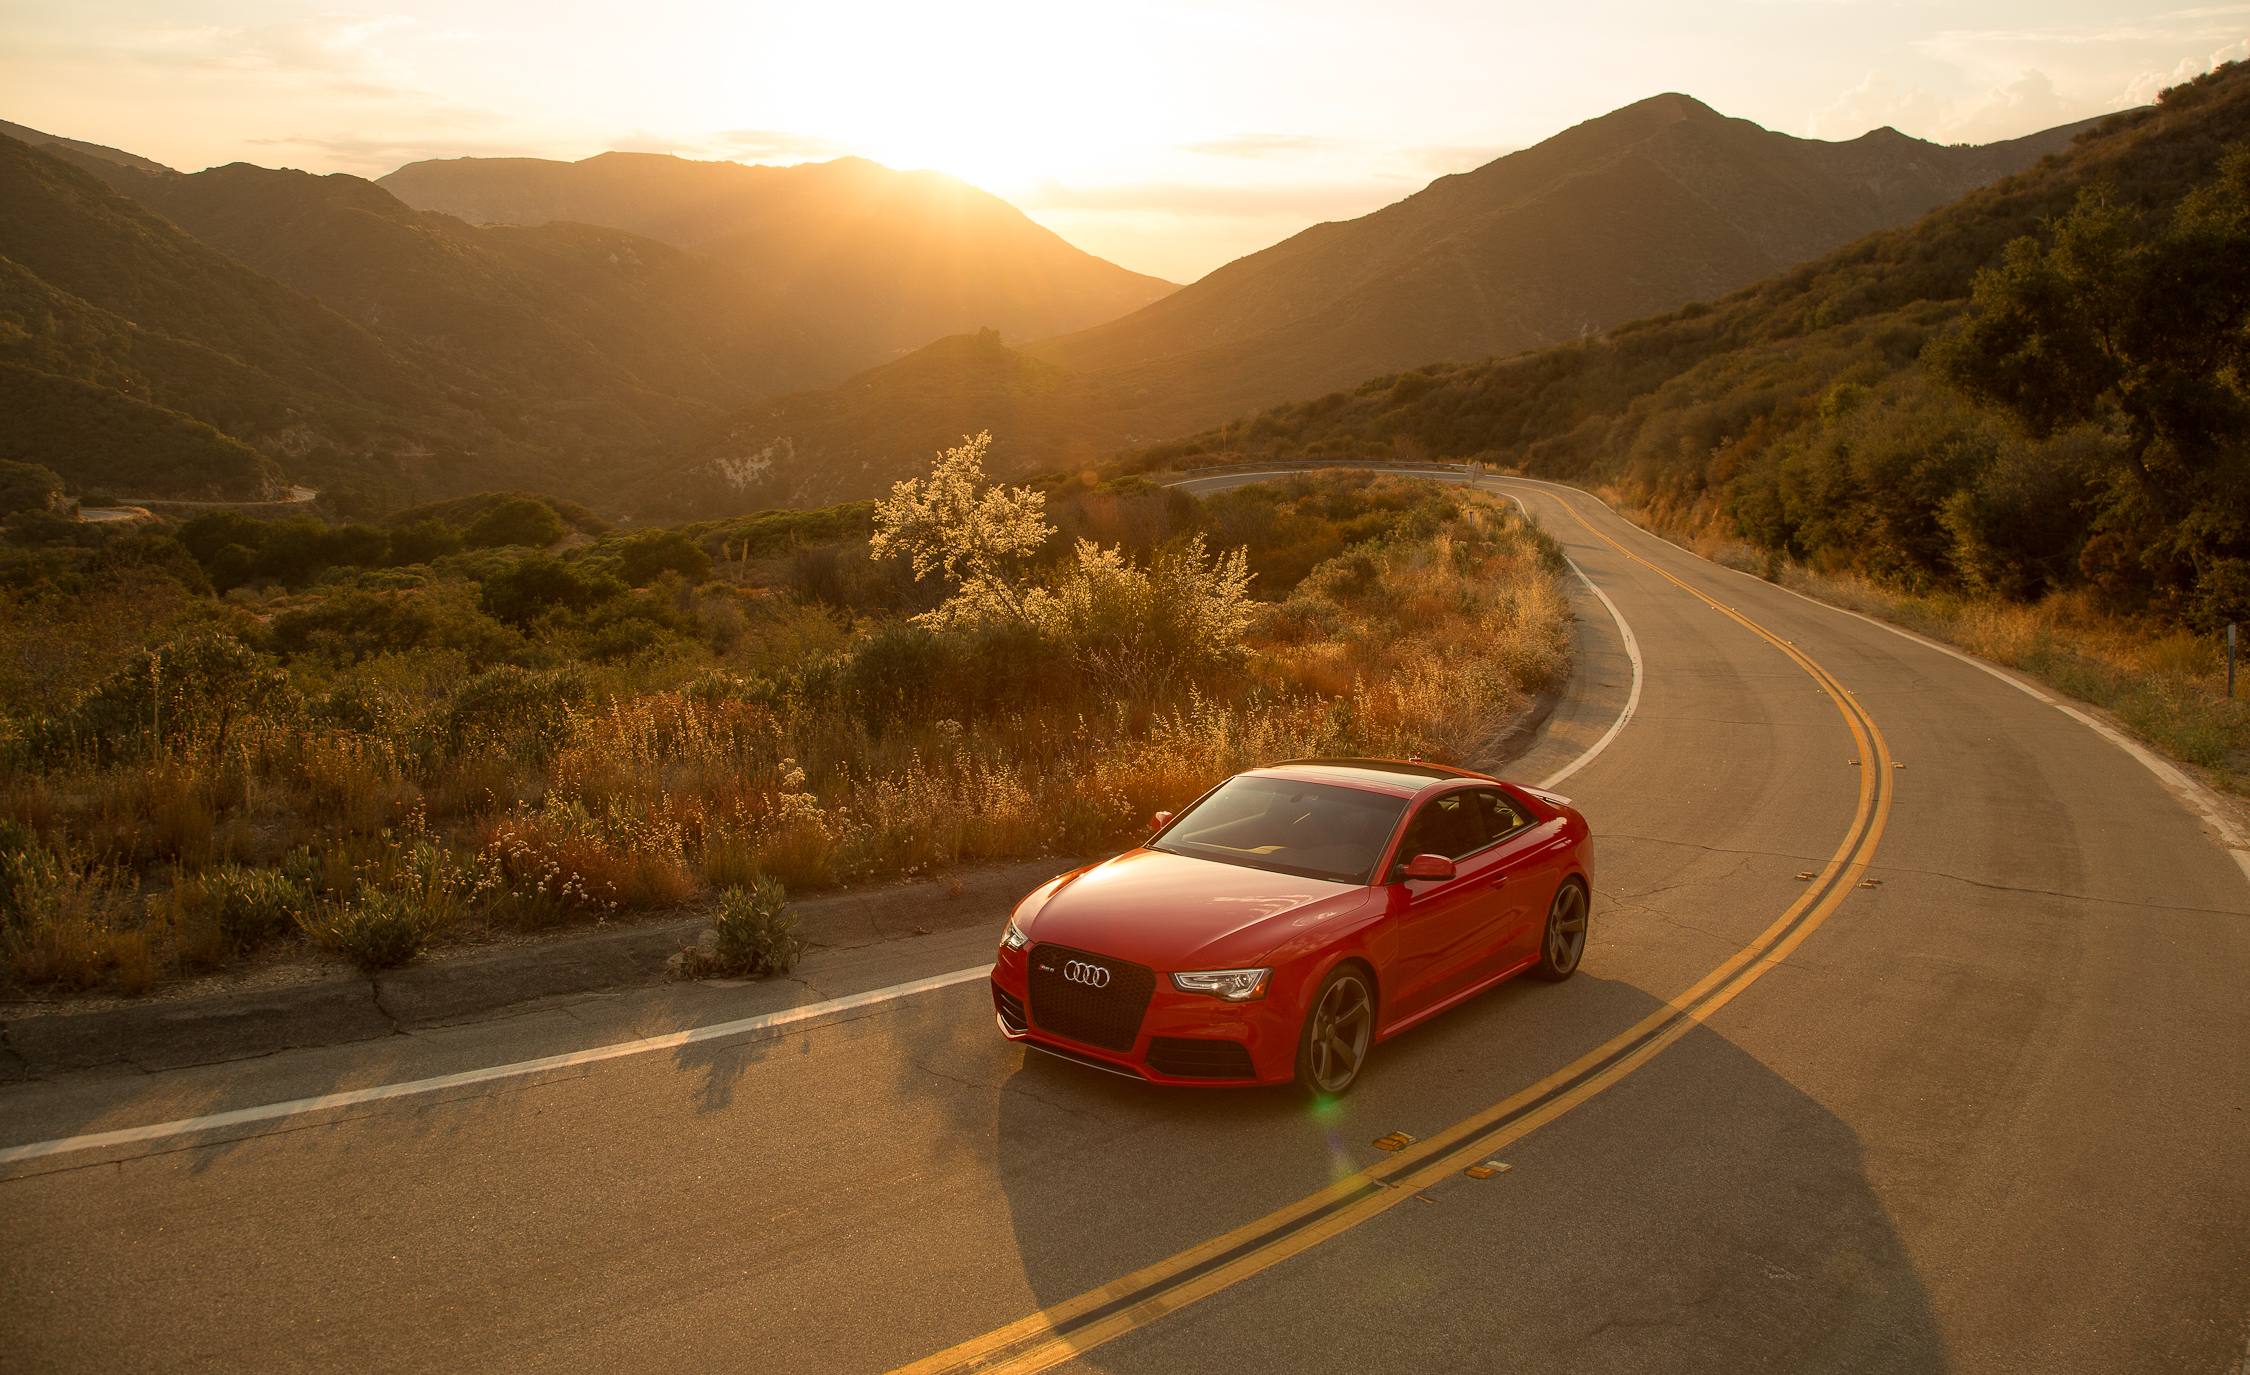 2013 Audi RS 5 Test Drive Preview (View 32 of 41)